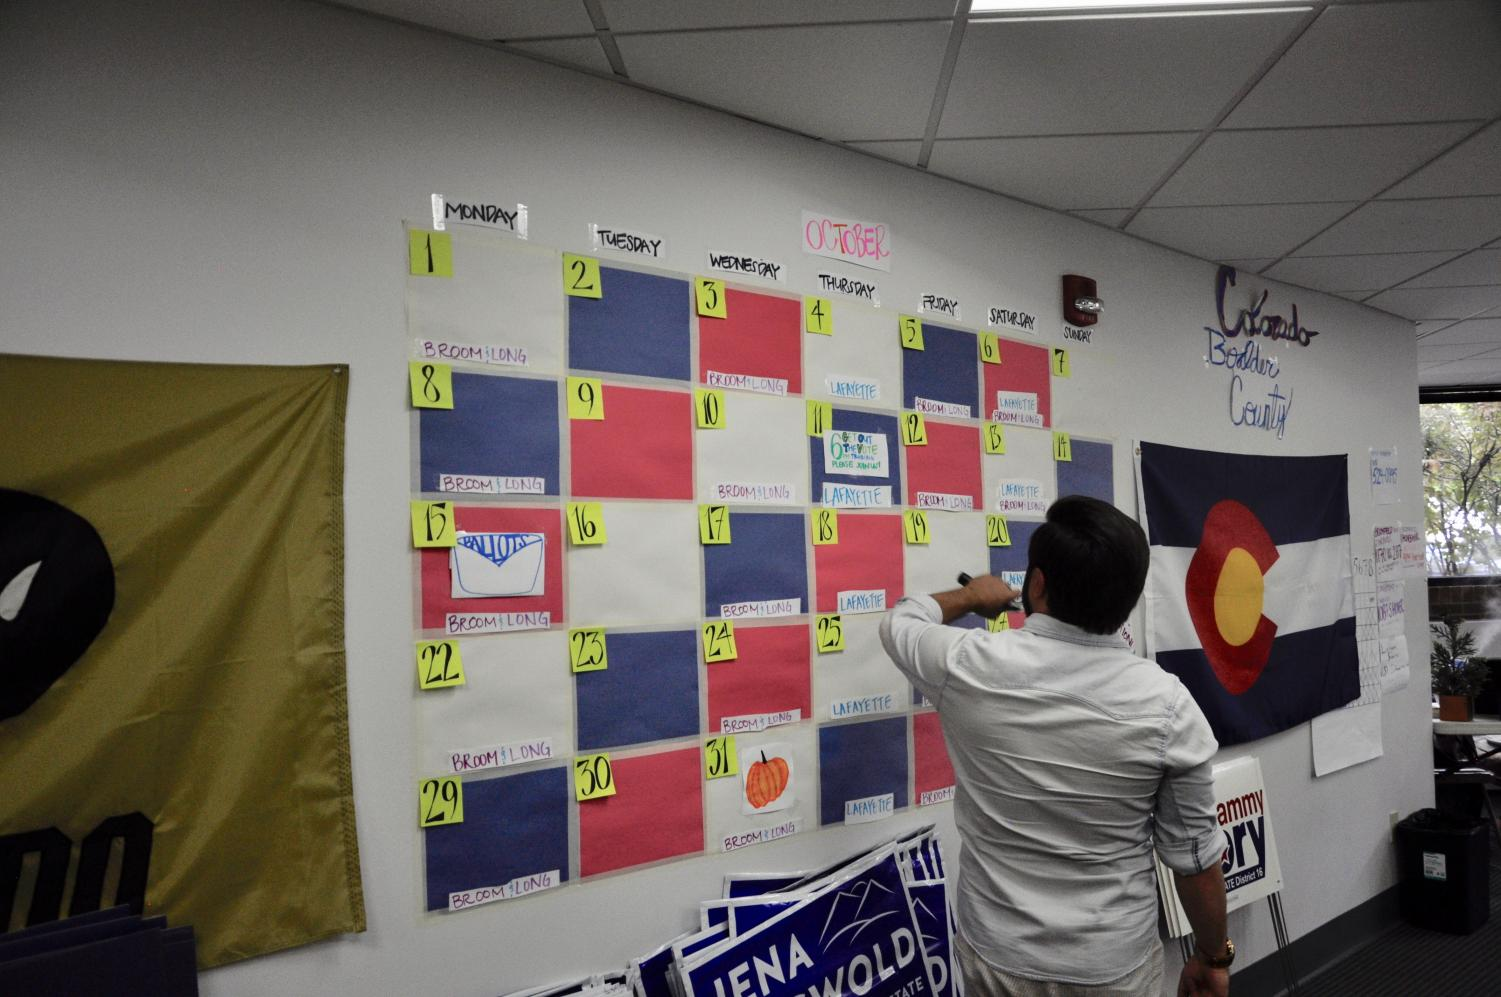 Staff at the Polis campaign office organize what needs to get done. Interns are given large amounts of responsibility by the staff.